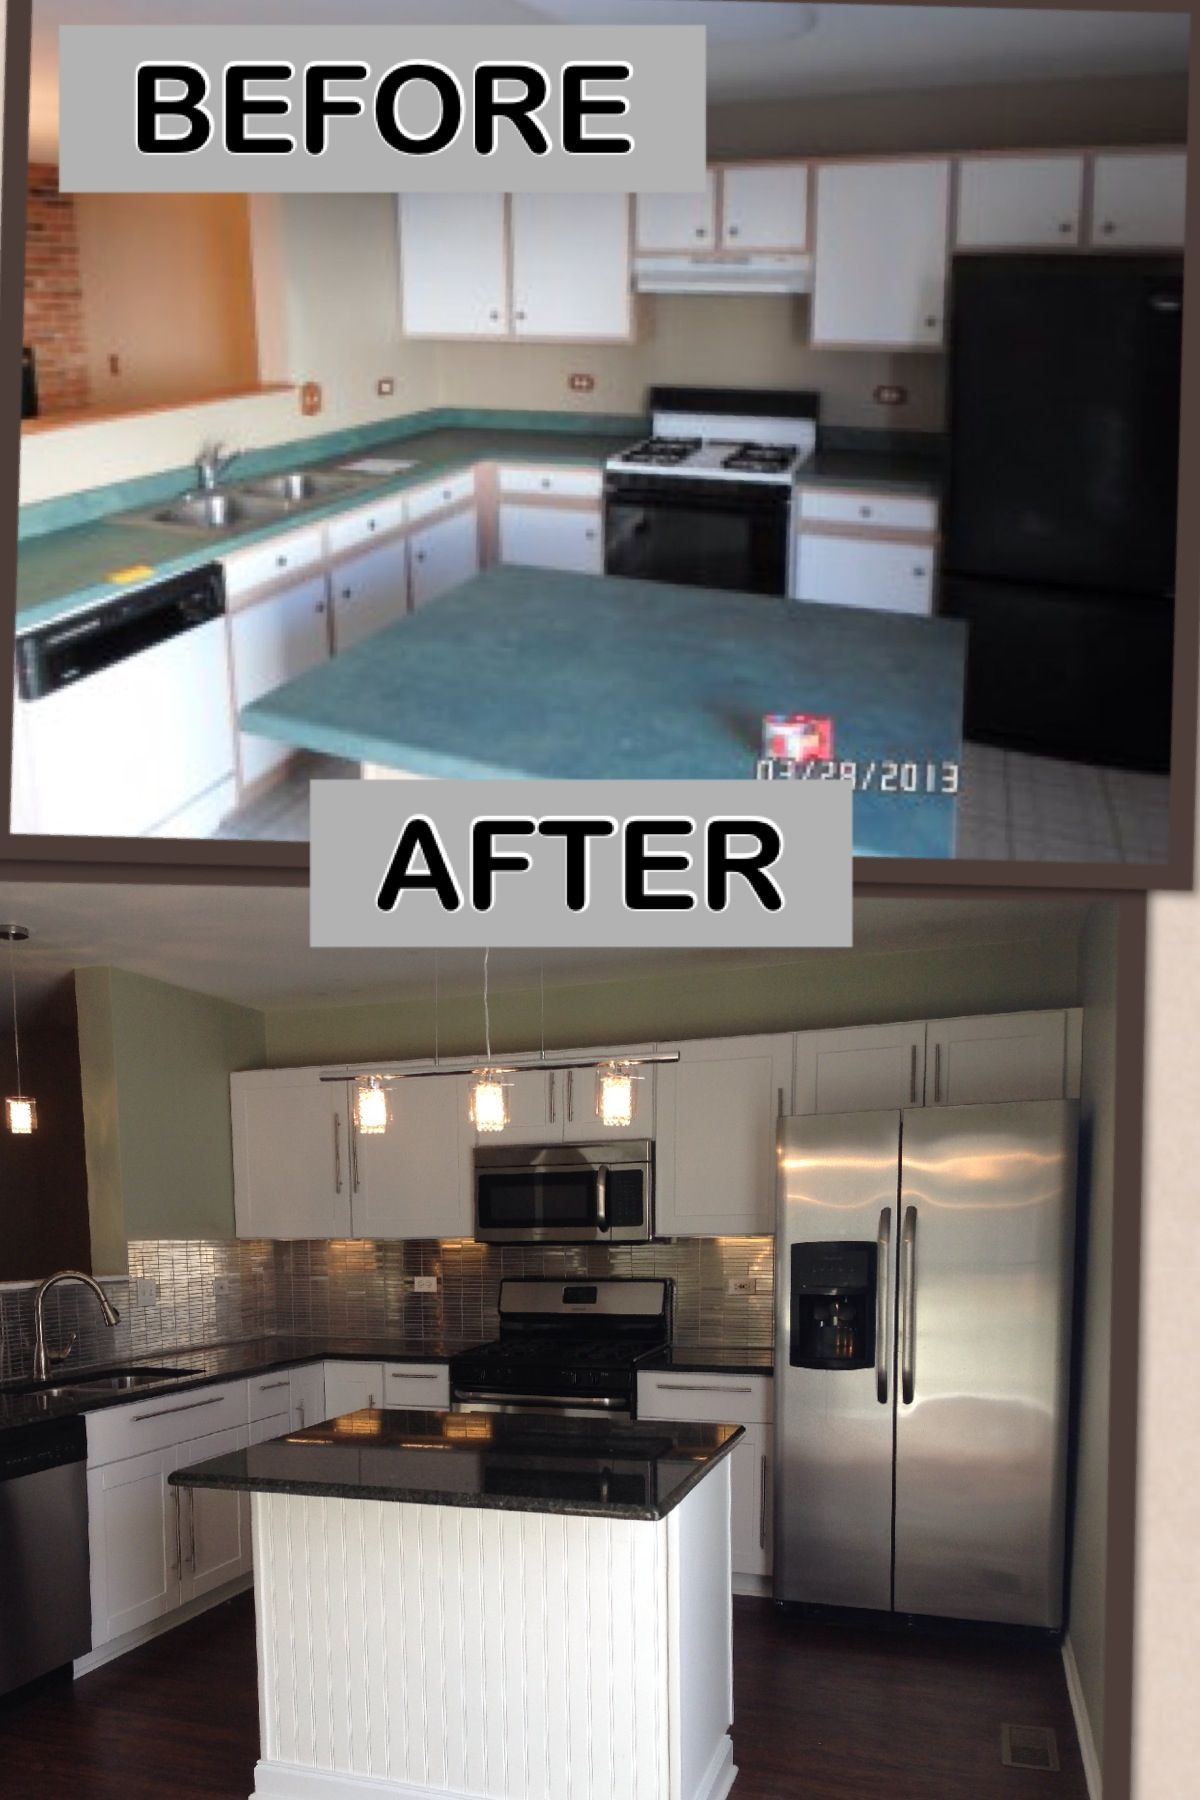 Kitchen remodel on a budget everything brand new for for Renovate a kitchen on a budget